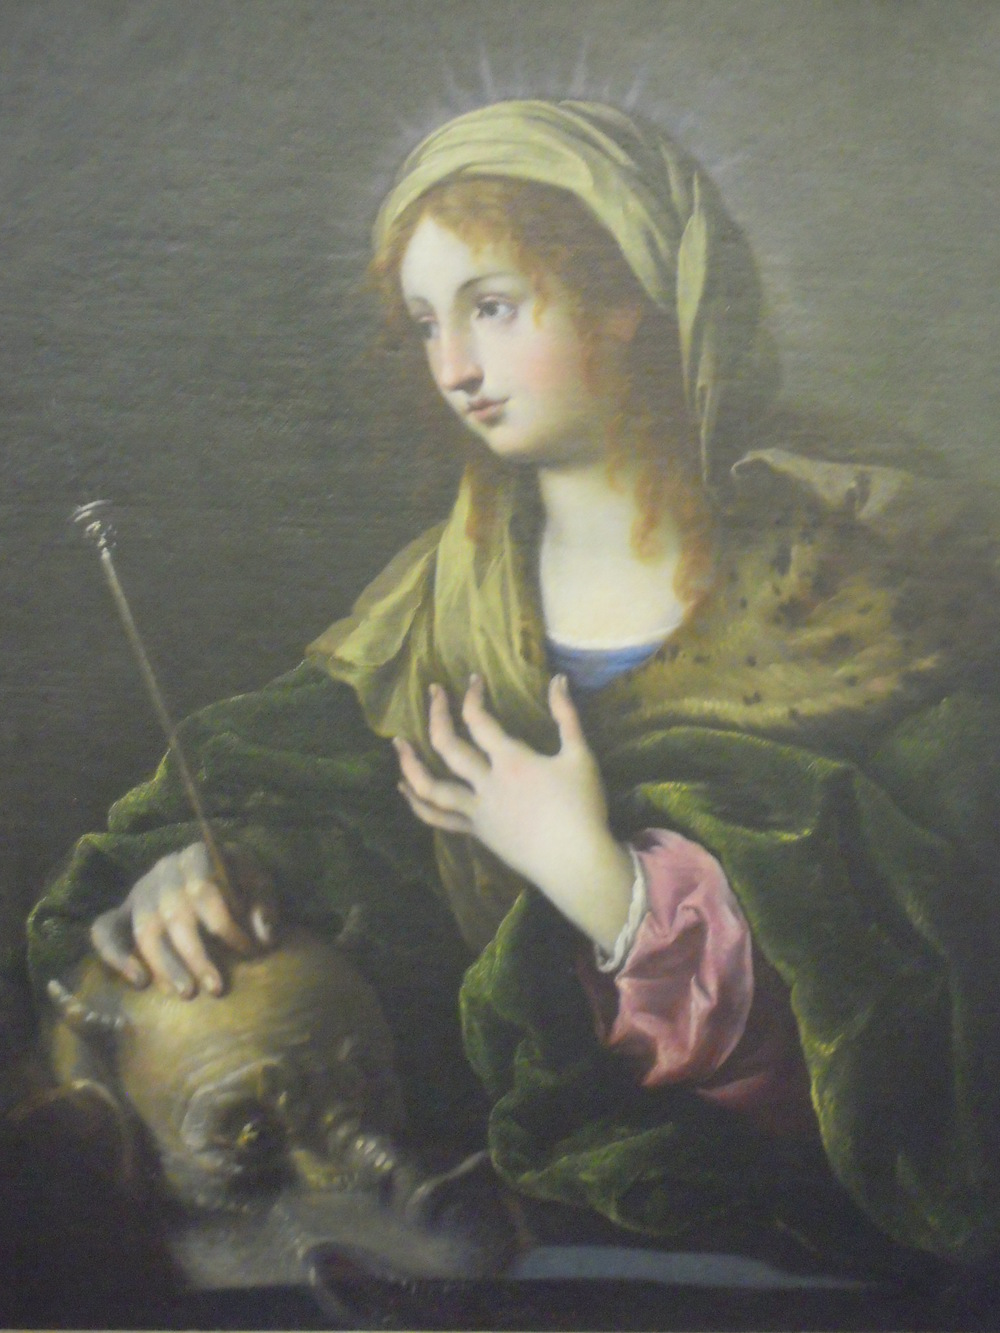 St. Martha  by Gianbettino Cignaroli (1706-1770)